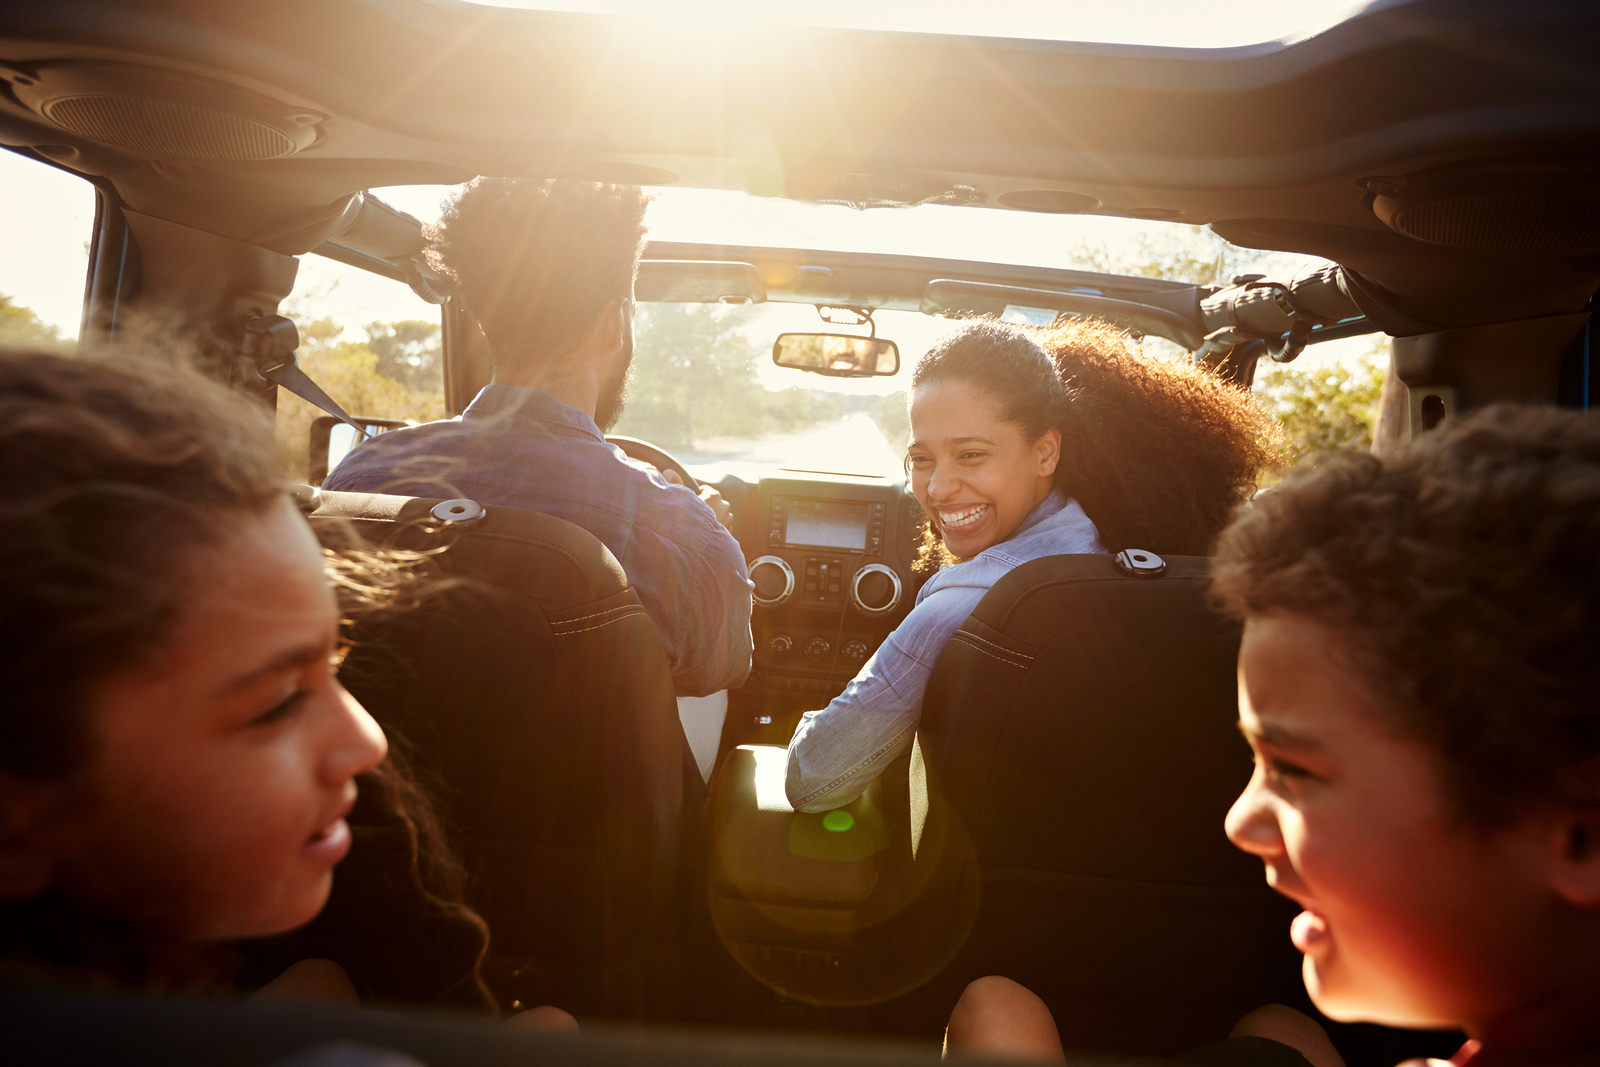 Here are some podcasts to make long family drives bearable.